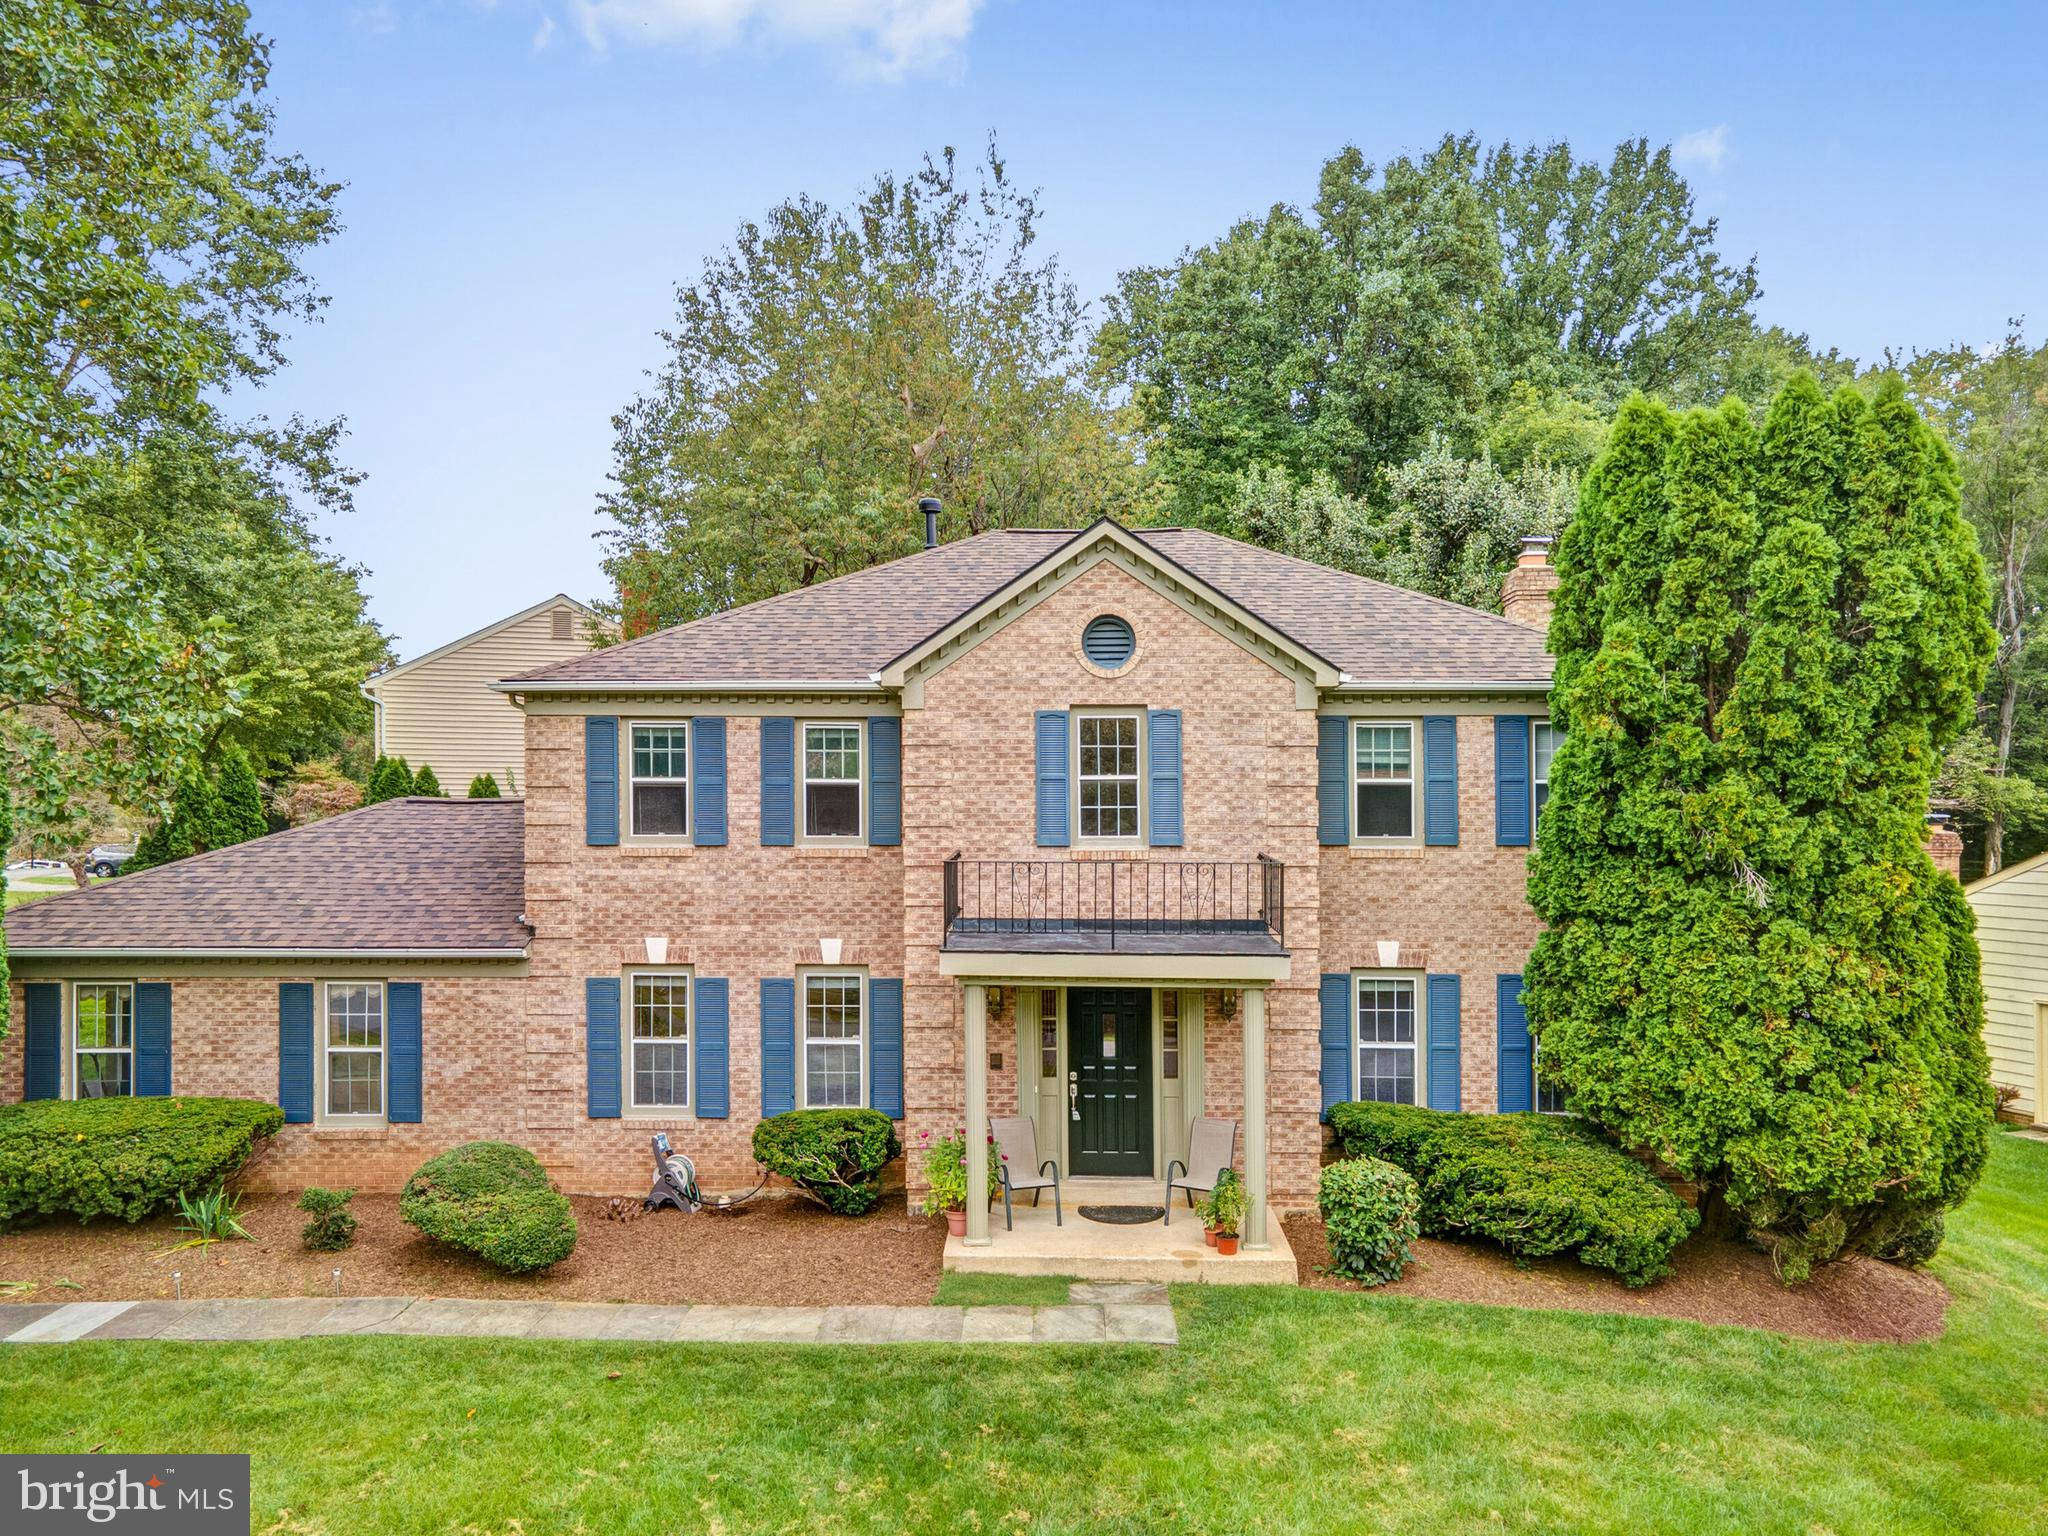 2424 Kaywood Ln, Silver Spring, MD, 20905